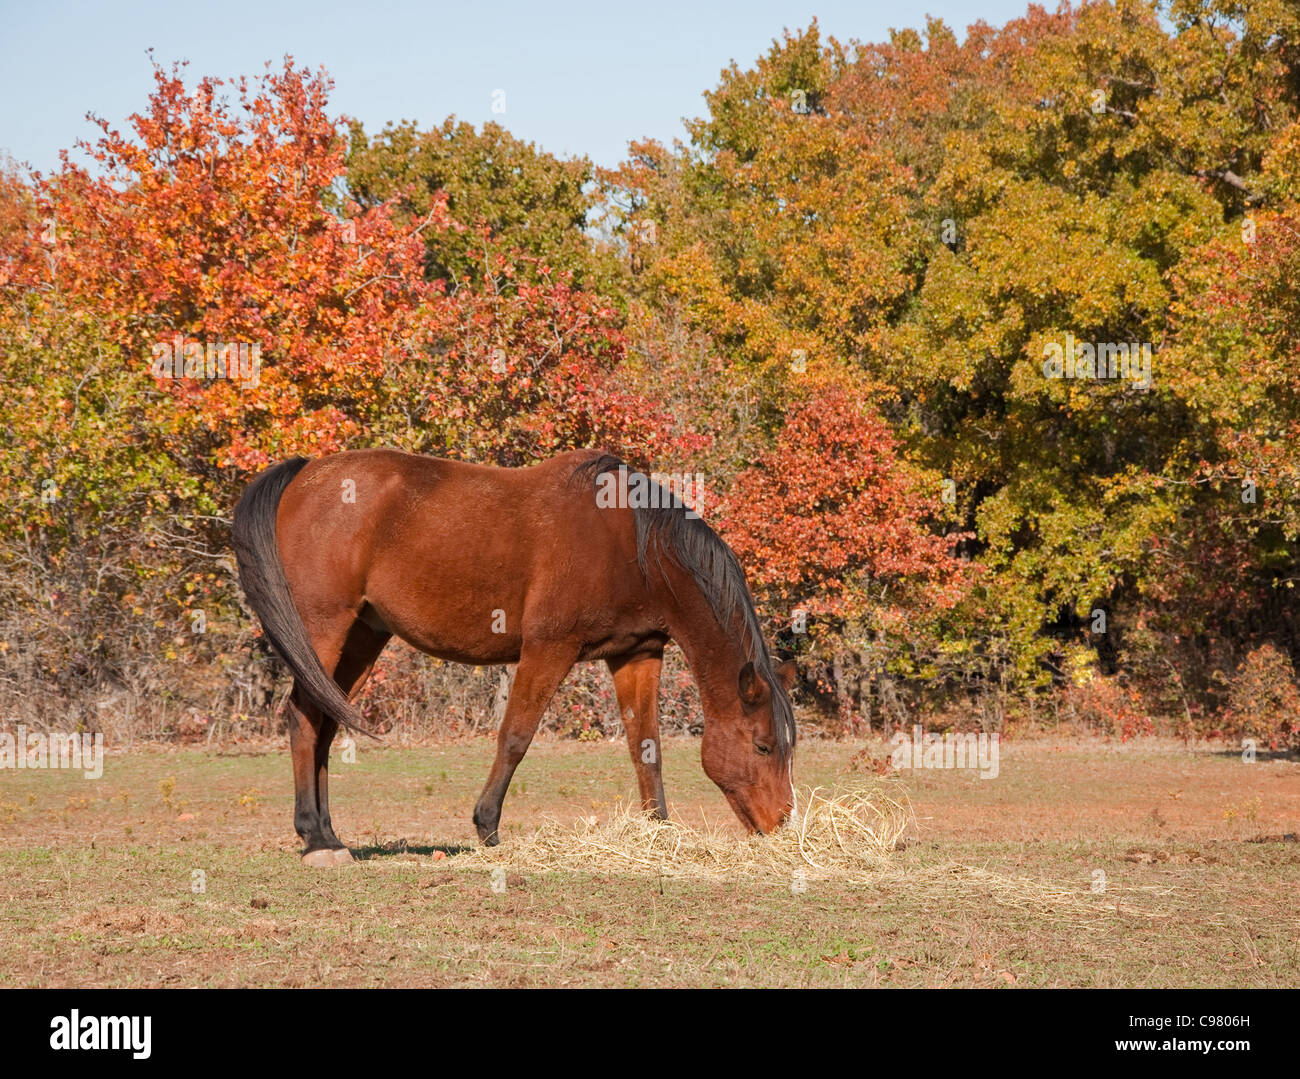 Red bay horse eating hay in fall pasture - Stock Image